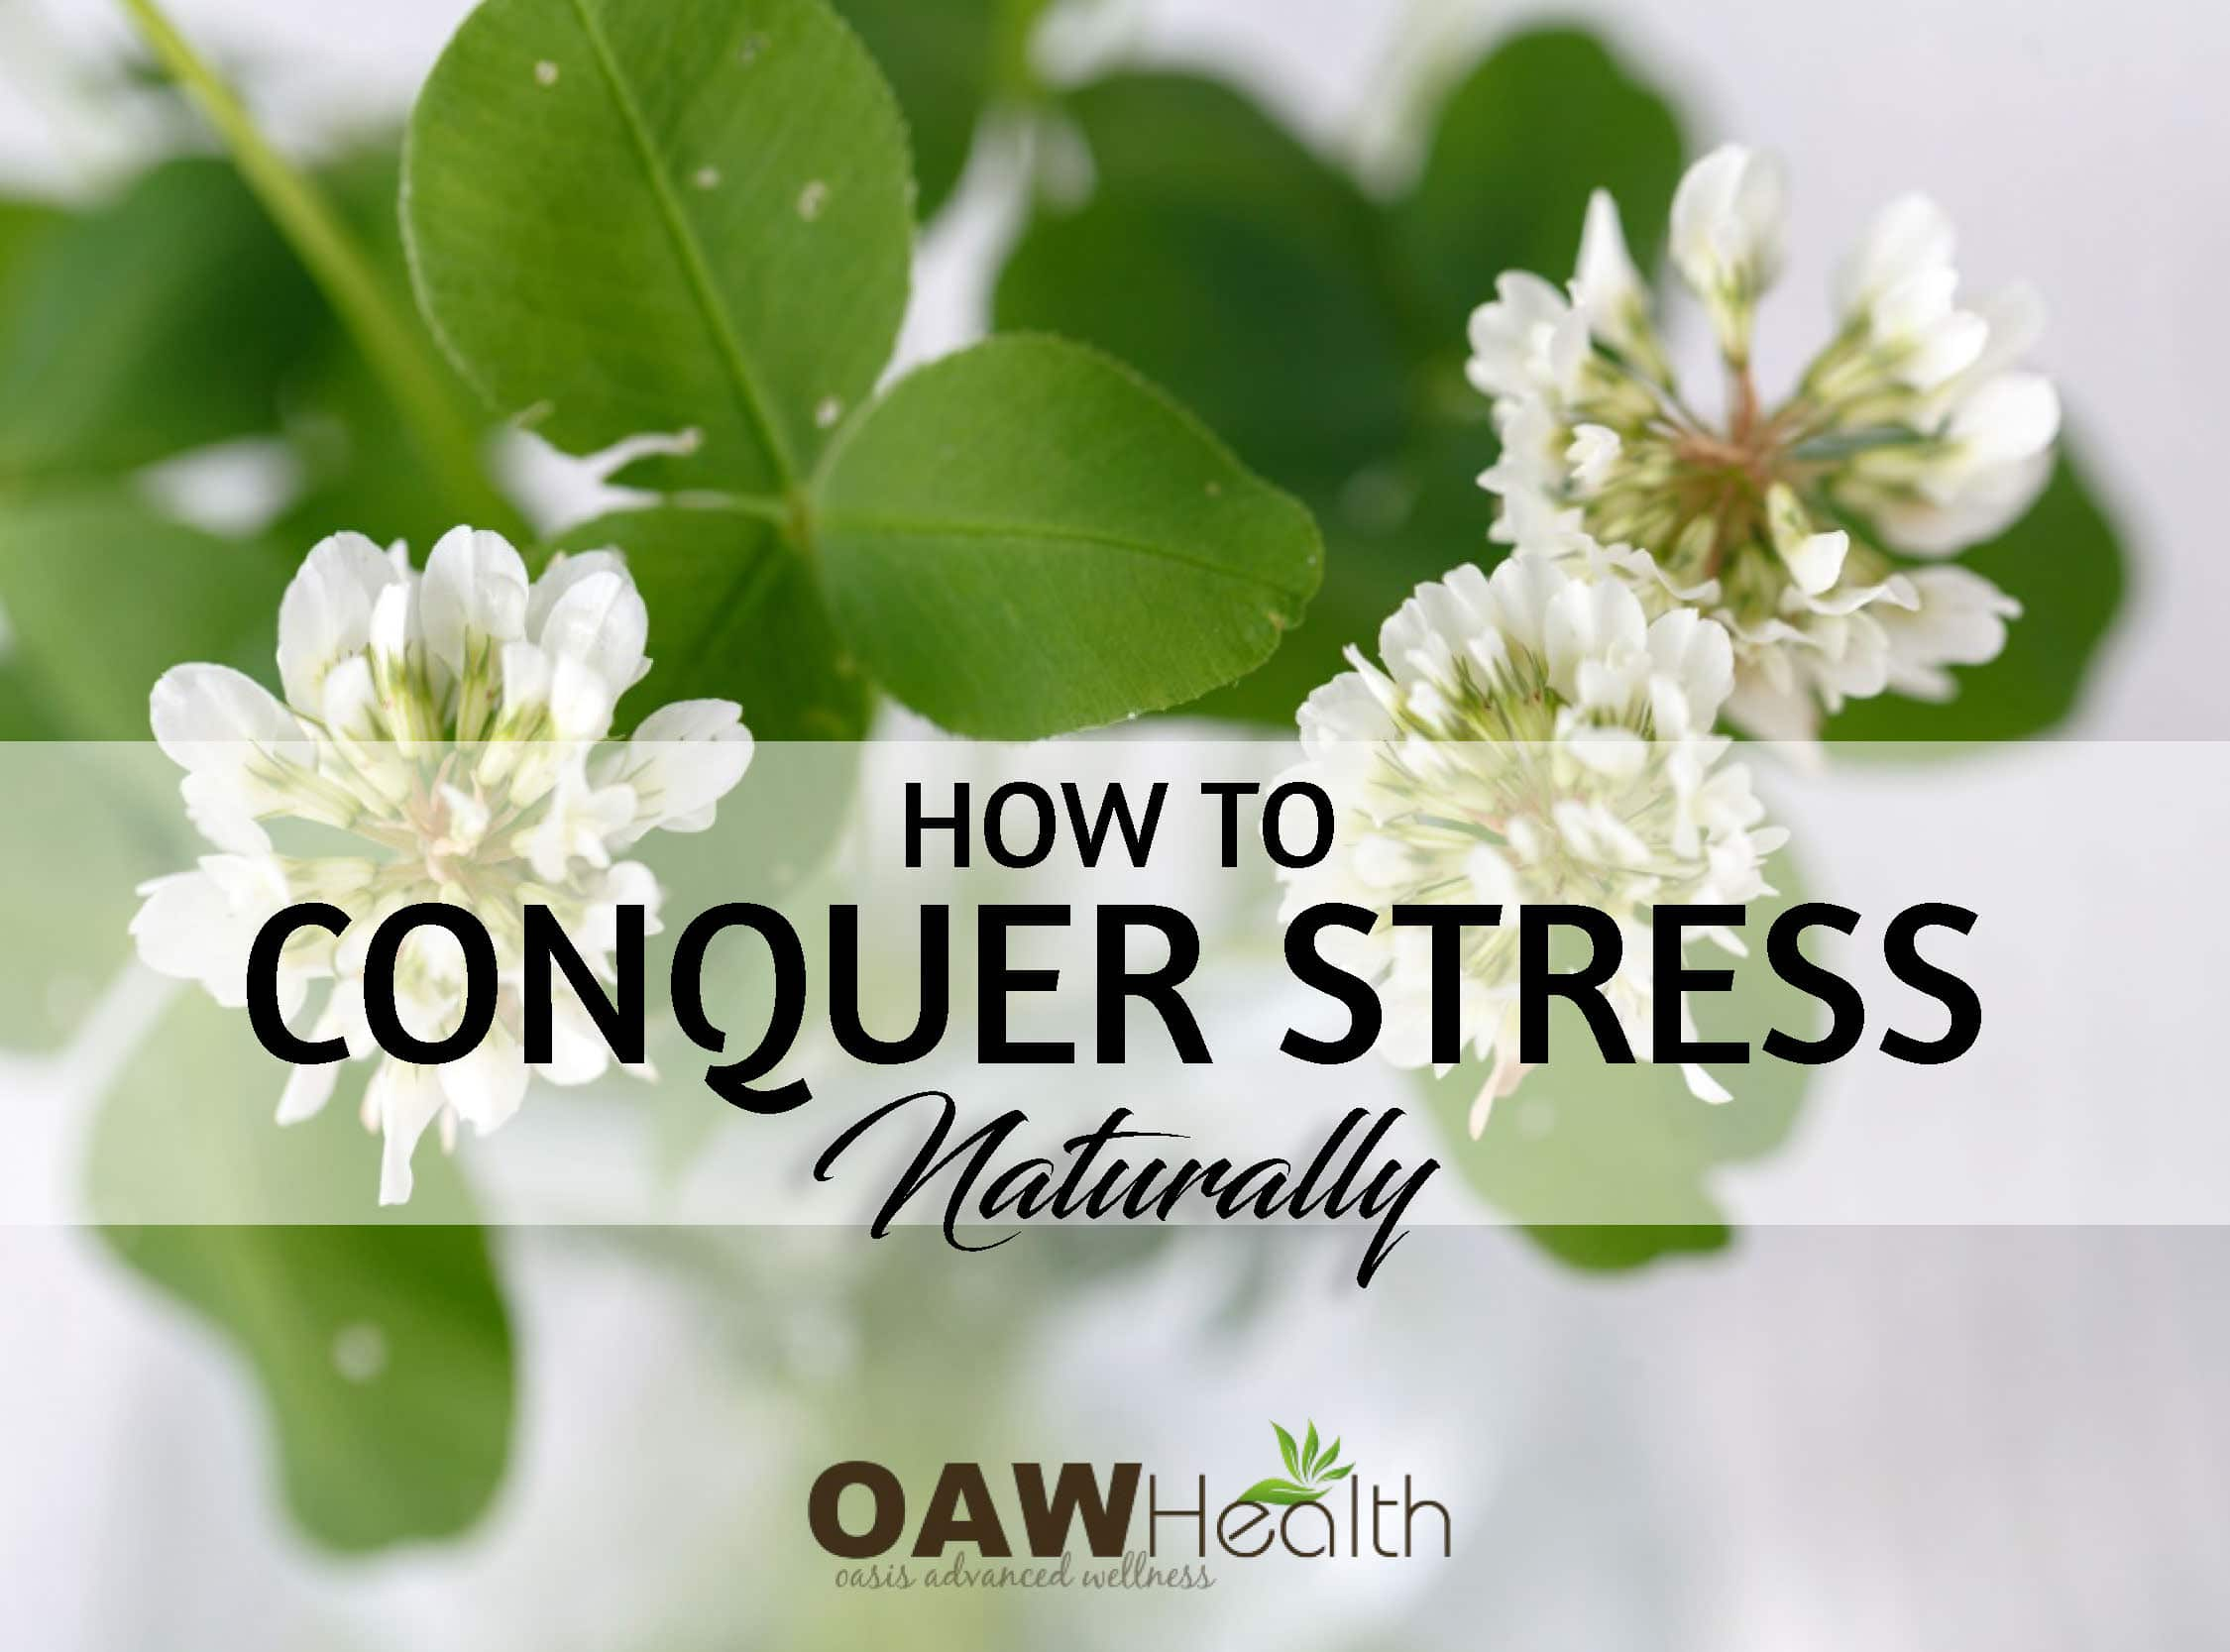 How to Conquer Stress Naturally